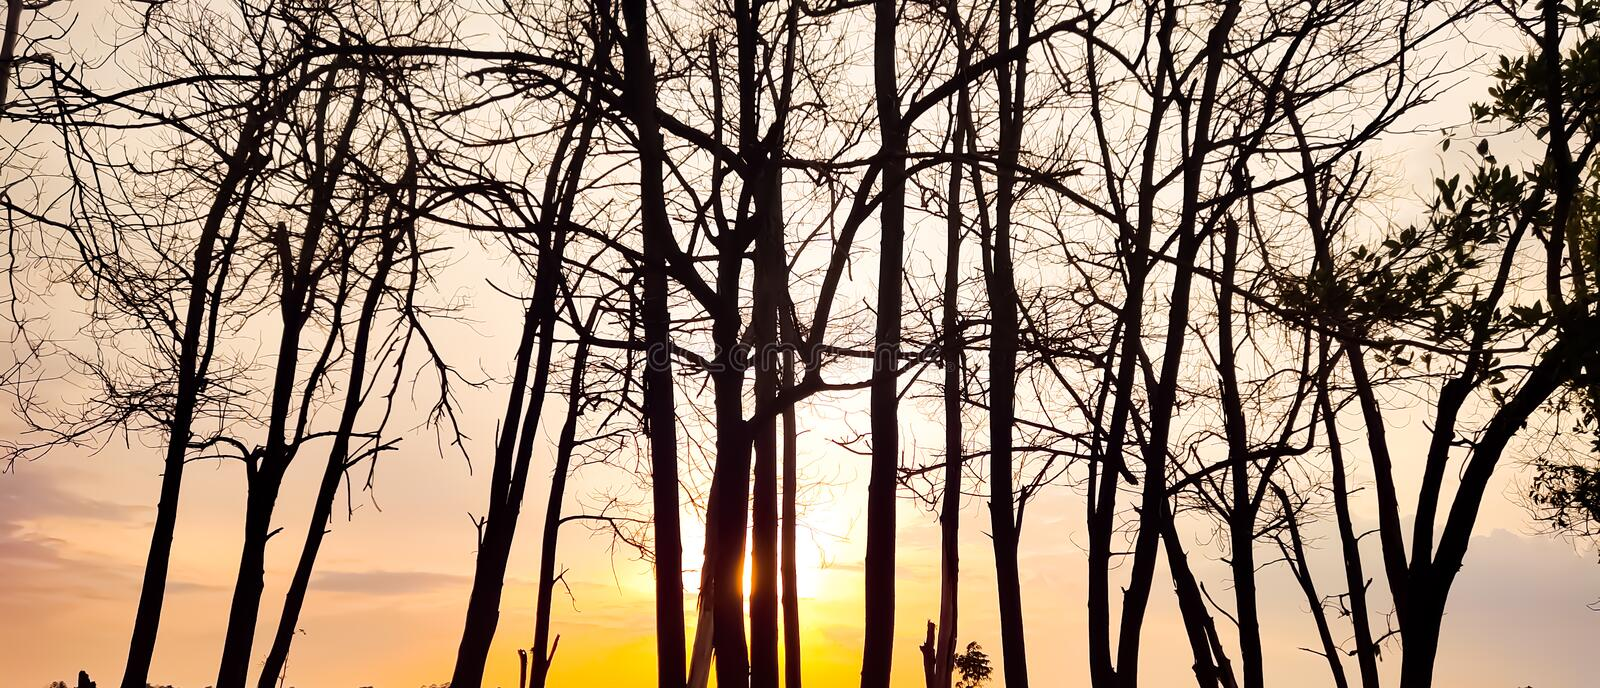 Sunset evening golden light glowing wilted tree Beauty from the shadows wilted trees royalty free stock photo